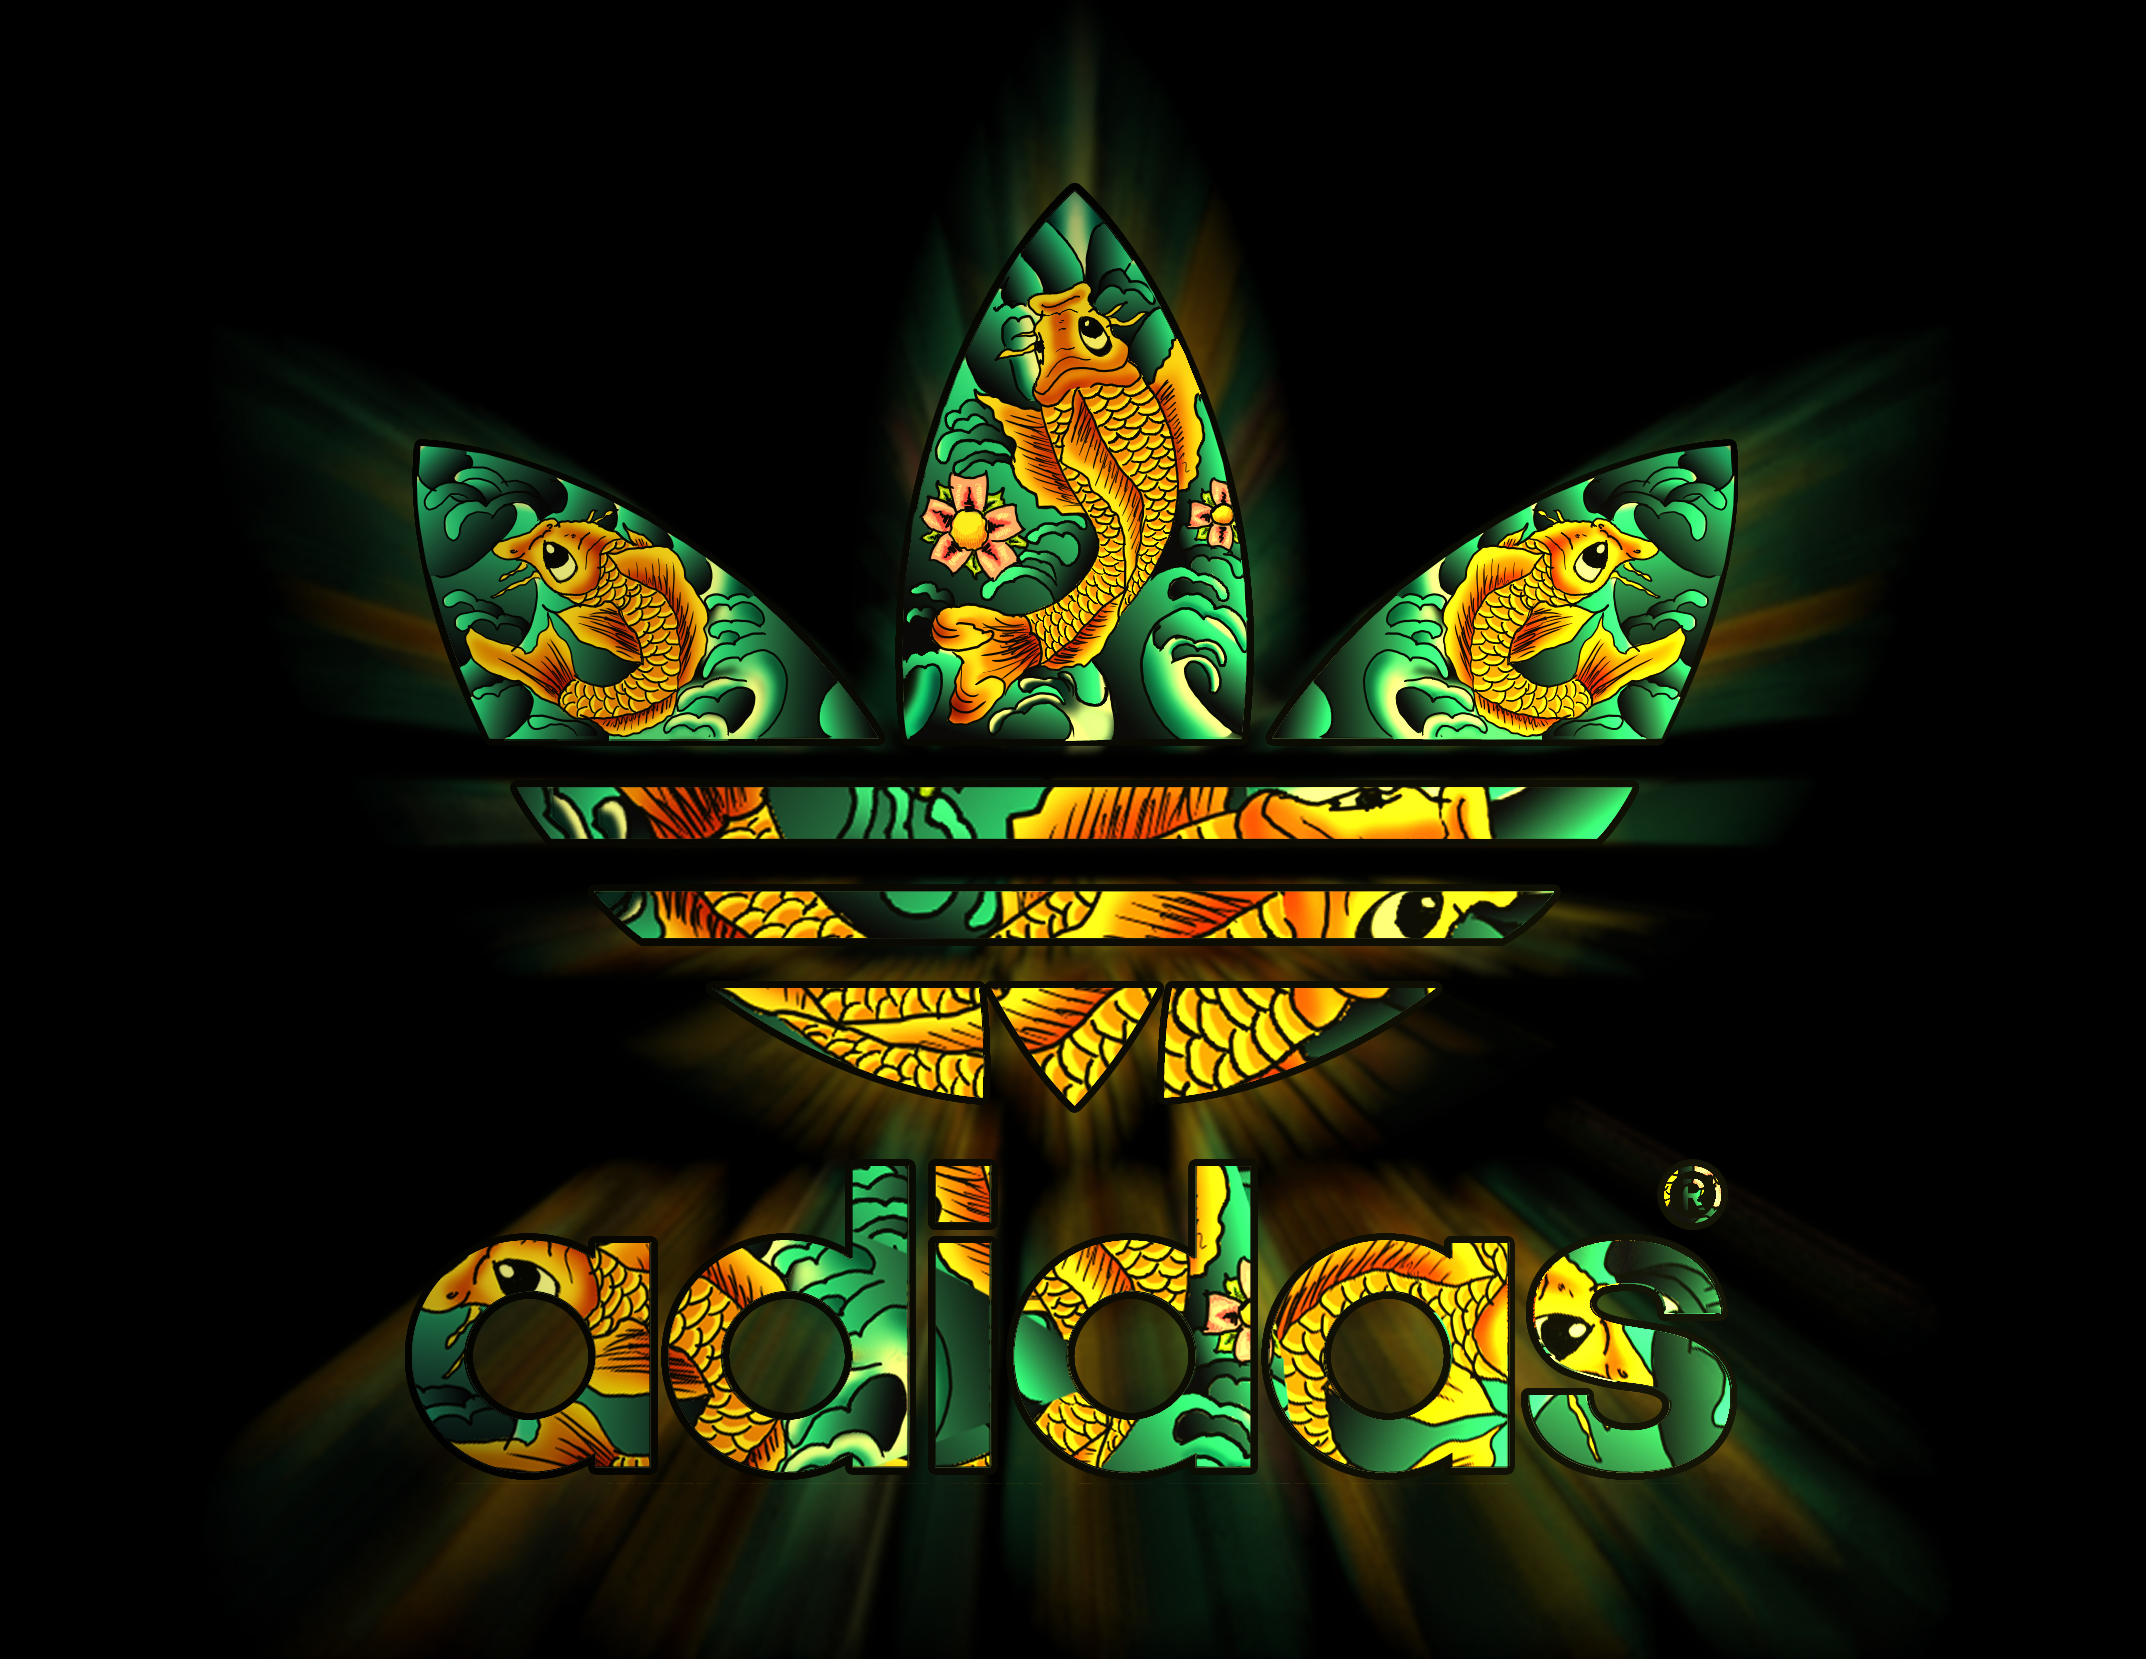 adidas logo and font wallpaper hd widescreen for your pc